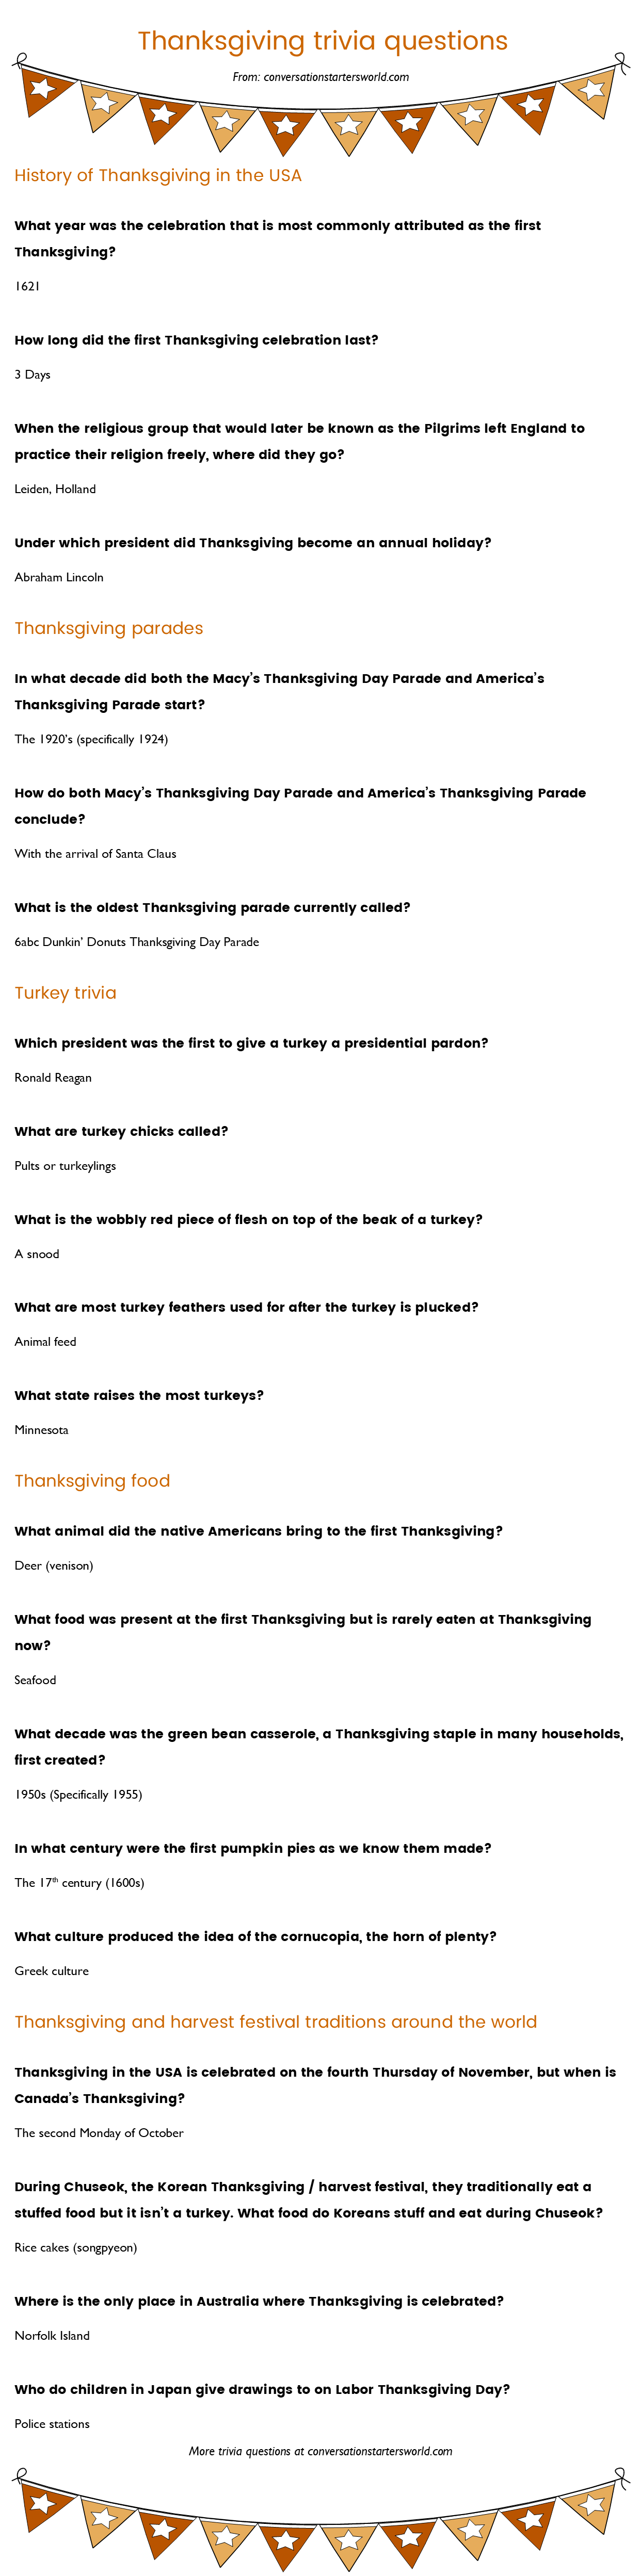 graphic about Free Printable Black History Trivia Questions and Answers titled 21 Thanksgiving trivia issues maximum us residents dont recognize the